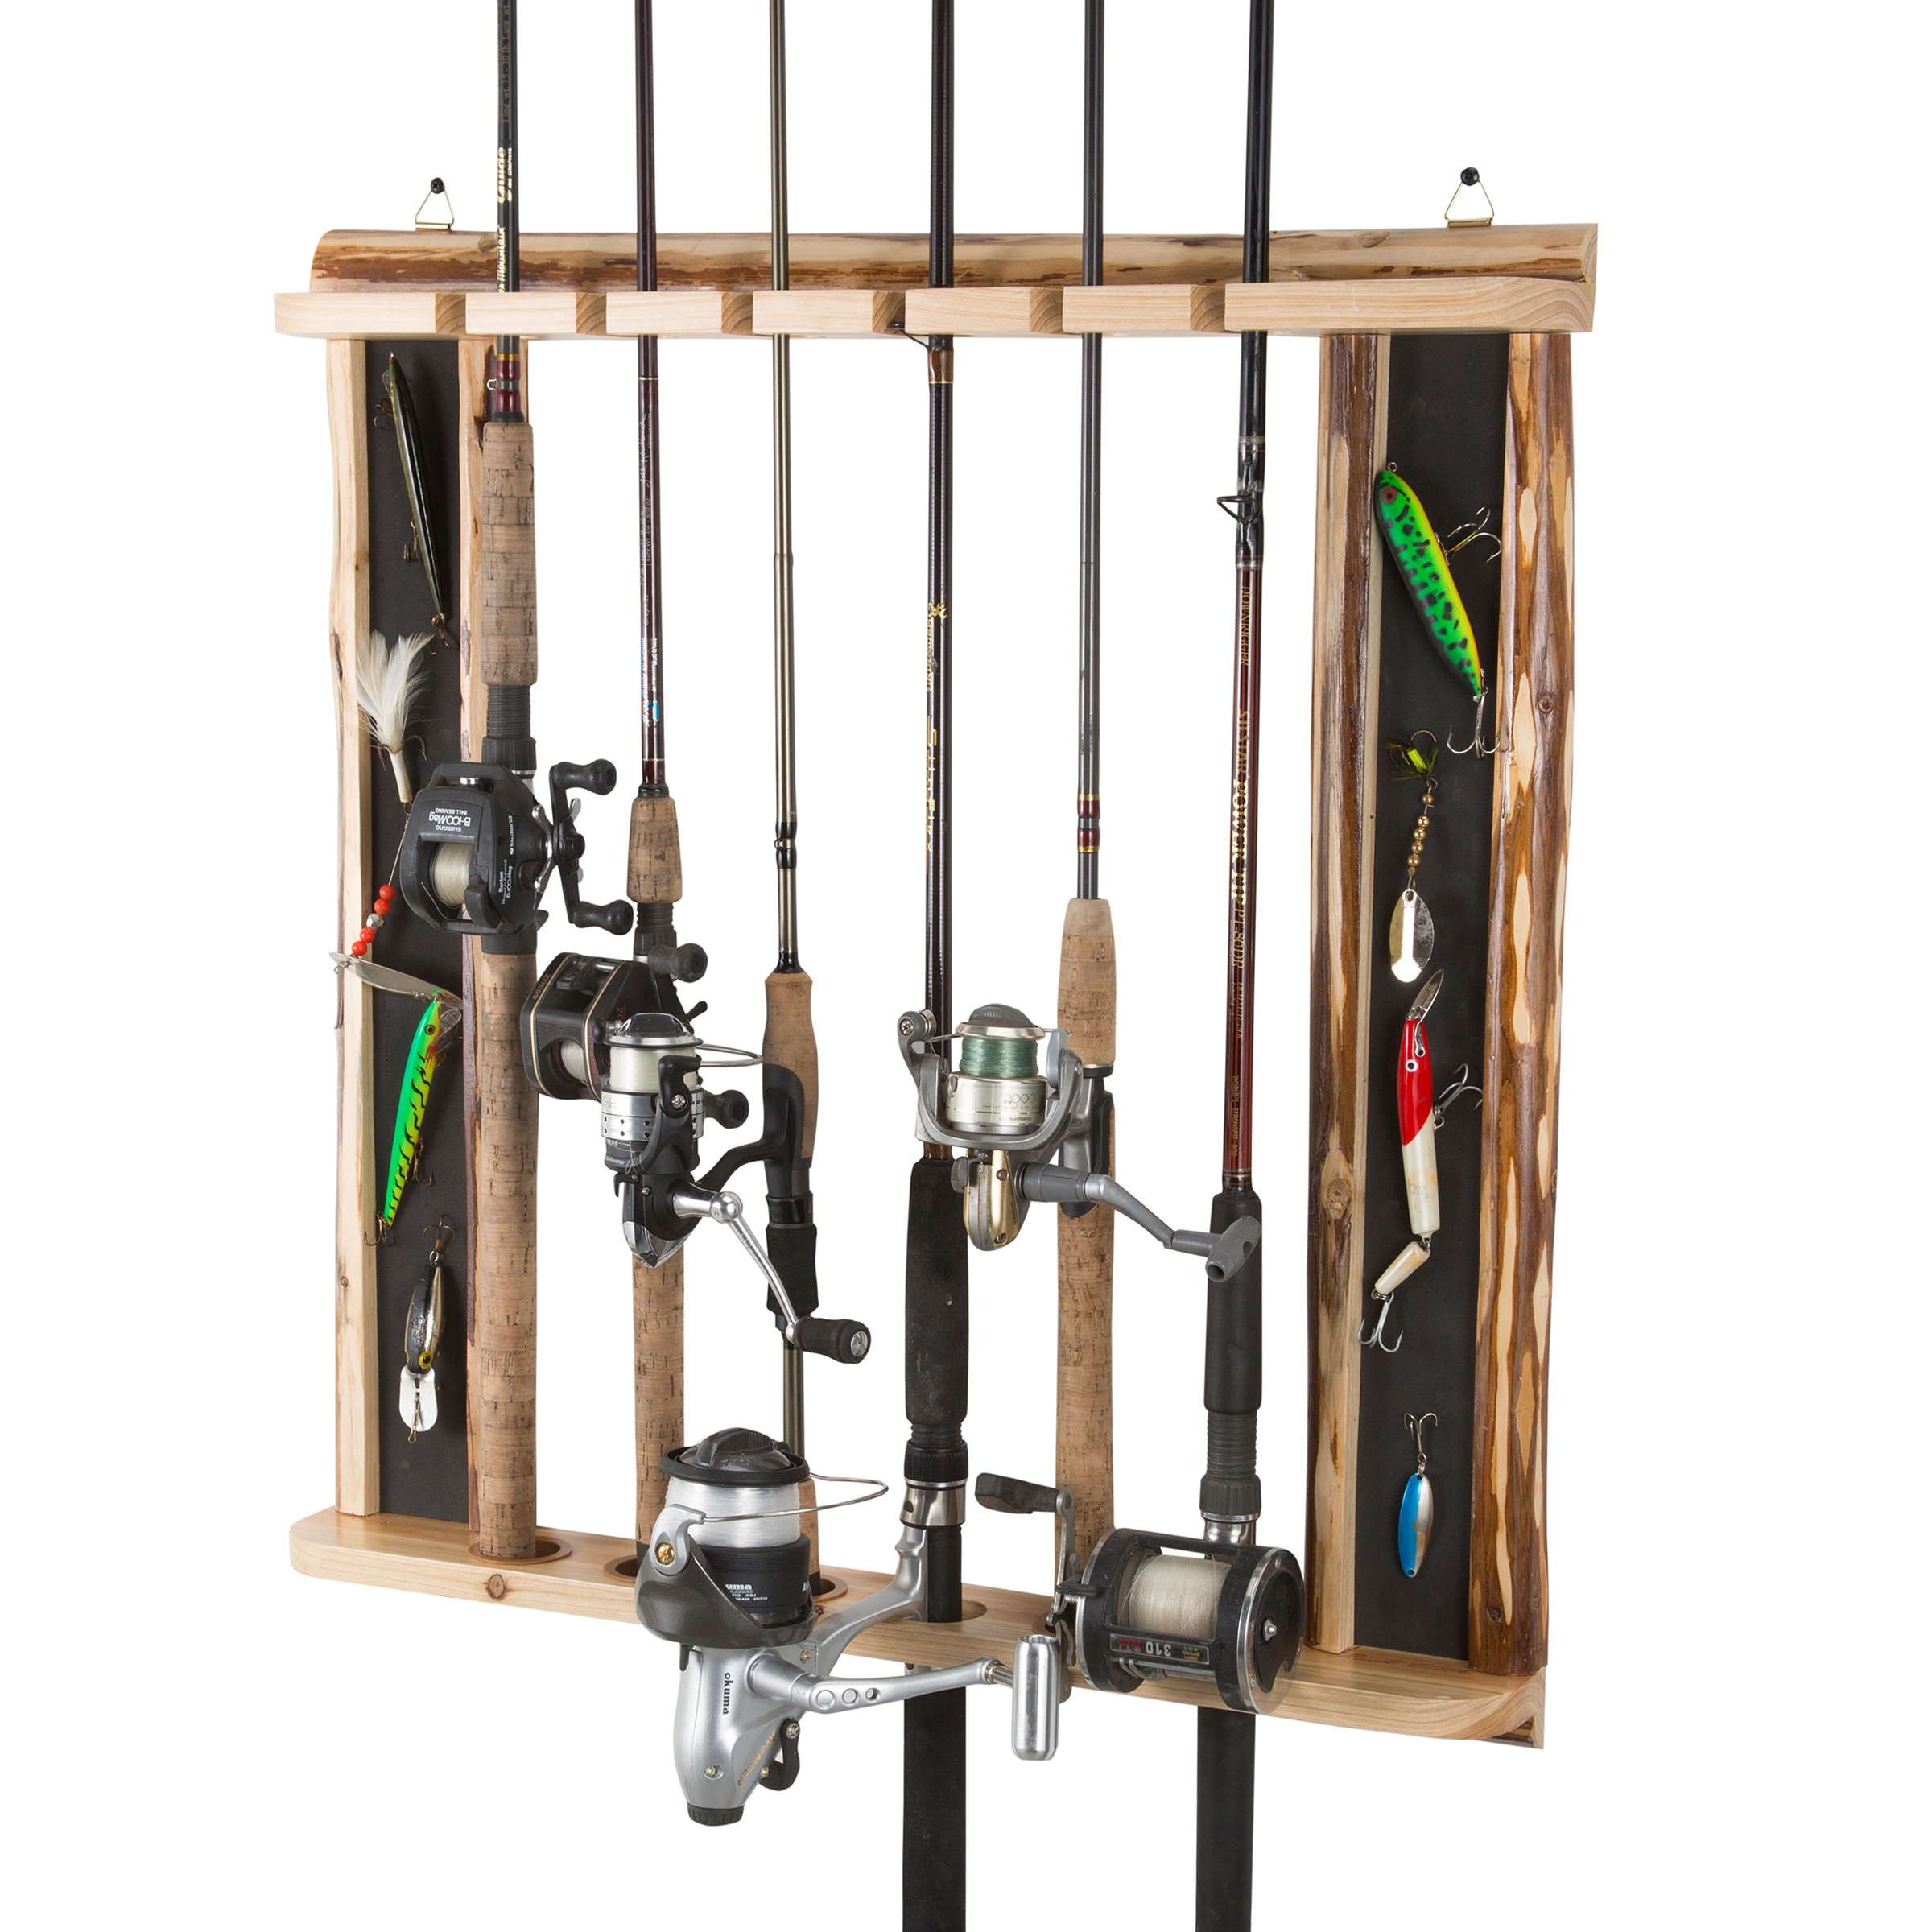 Rush Creek Creations Rustic 6 Fishing Rod Wall Storage Rack - 3 Minute Assembly